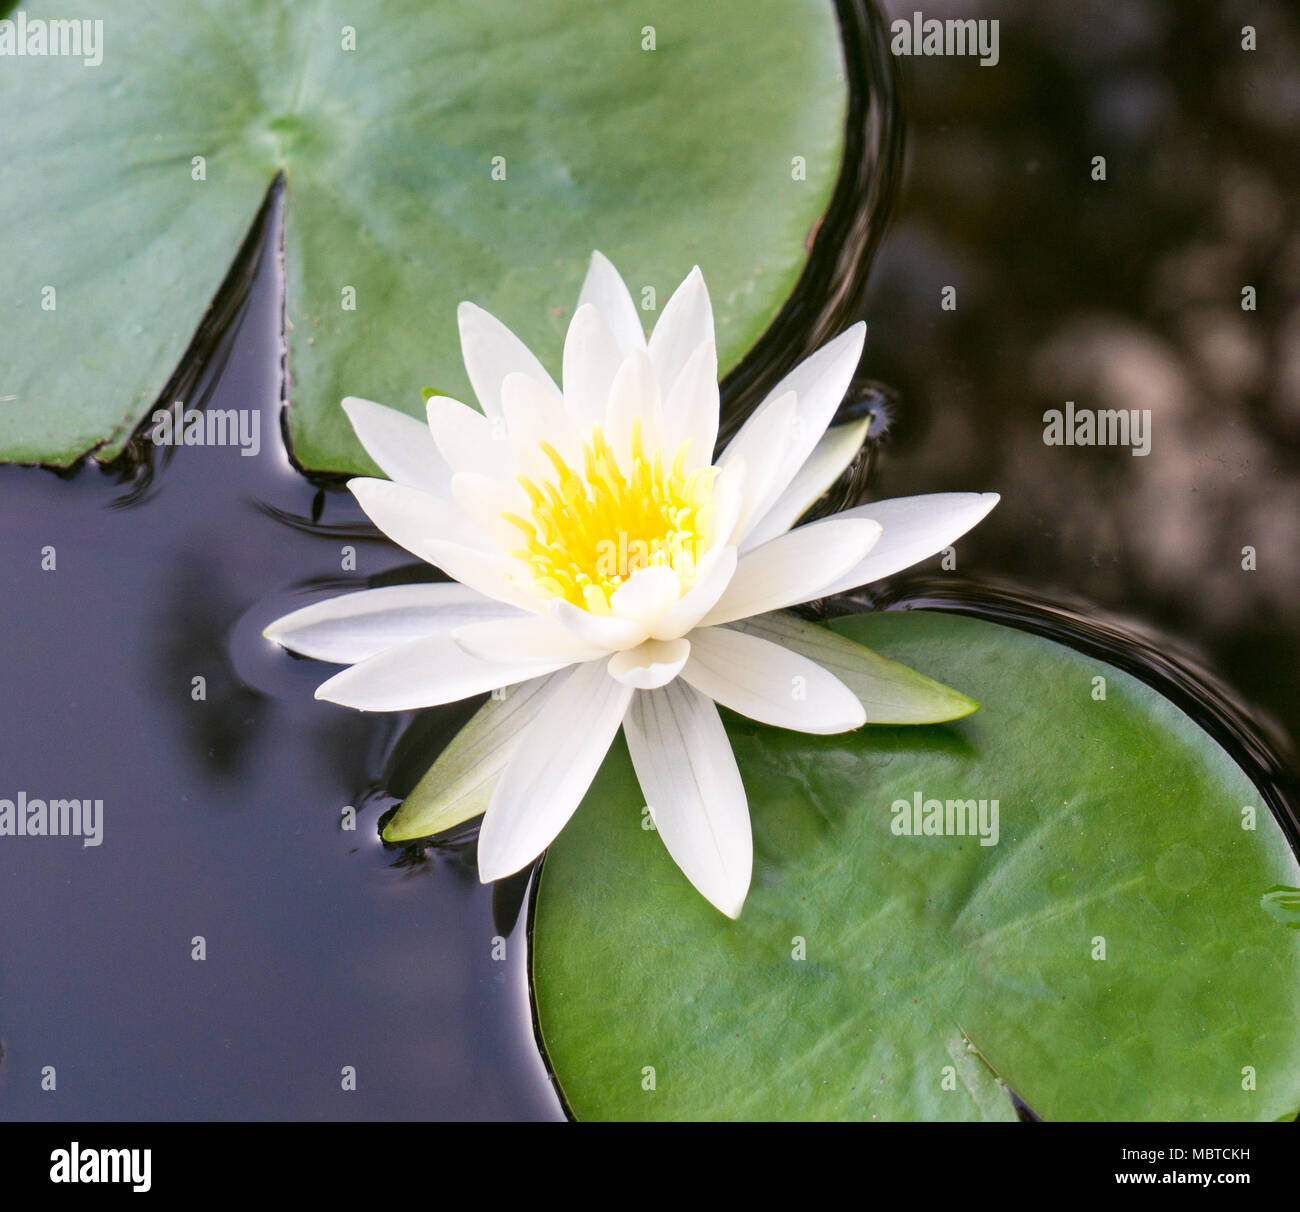 Spiritual rebirth stock photos spiritual rebirth stock images alamy an up close view of a white lotus flower blooming and lily pad floating in a mightylinksfo